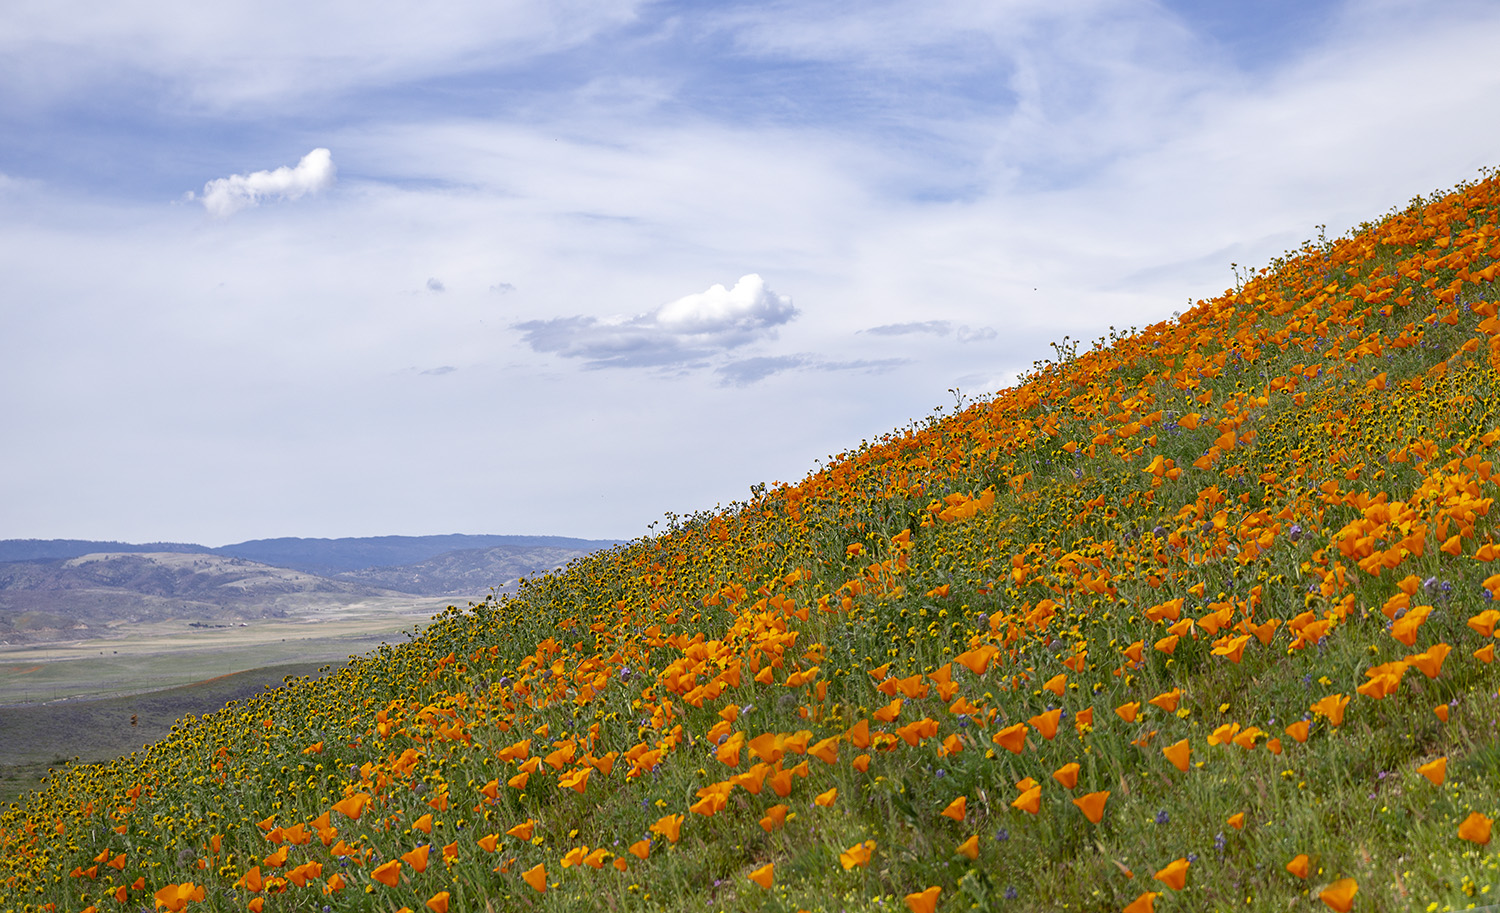 Hill of Blooming California Poppies